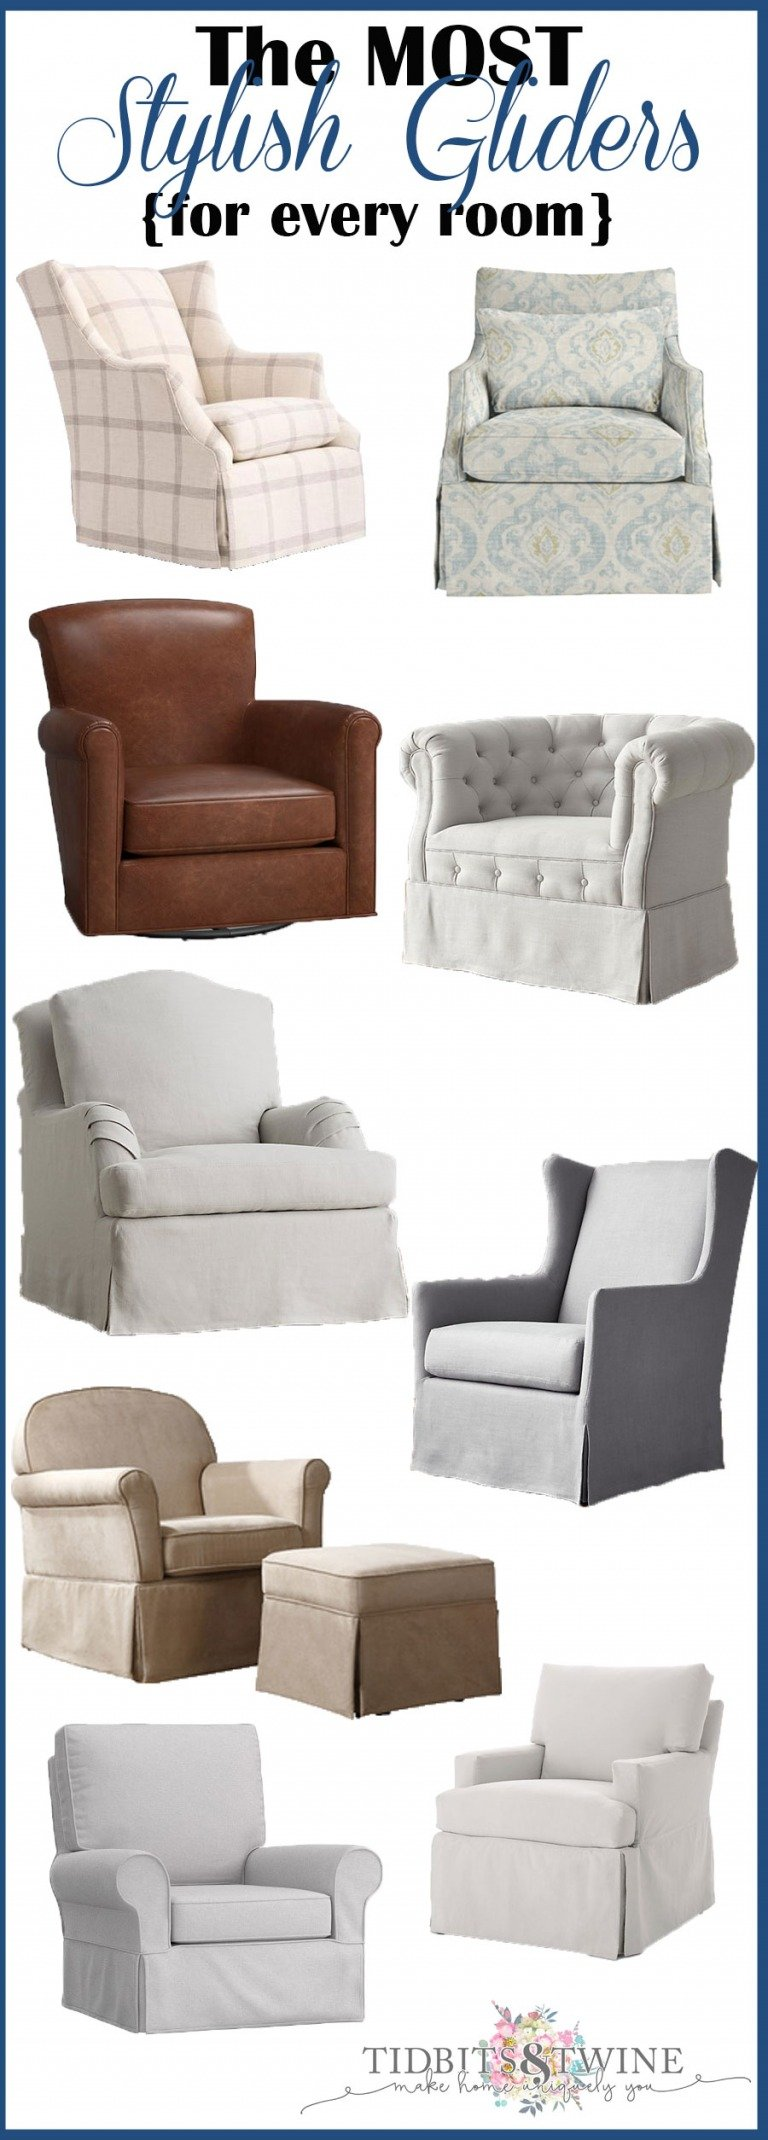 Stylish Glider Chairs for Every Room of Your Home